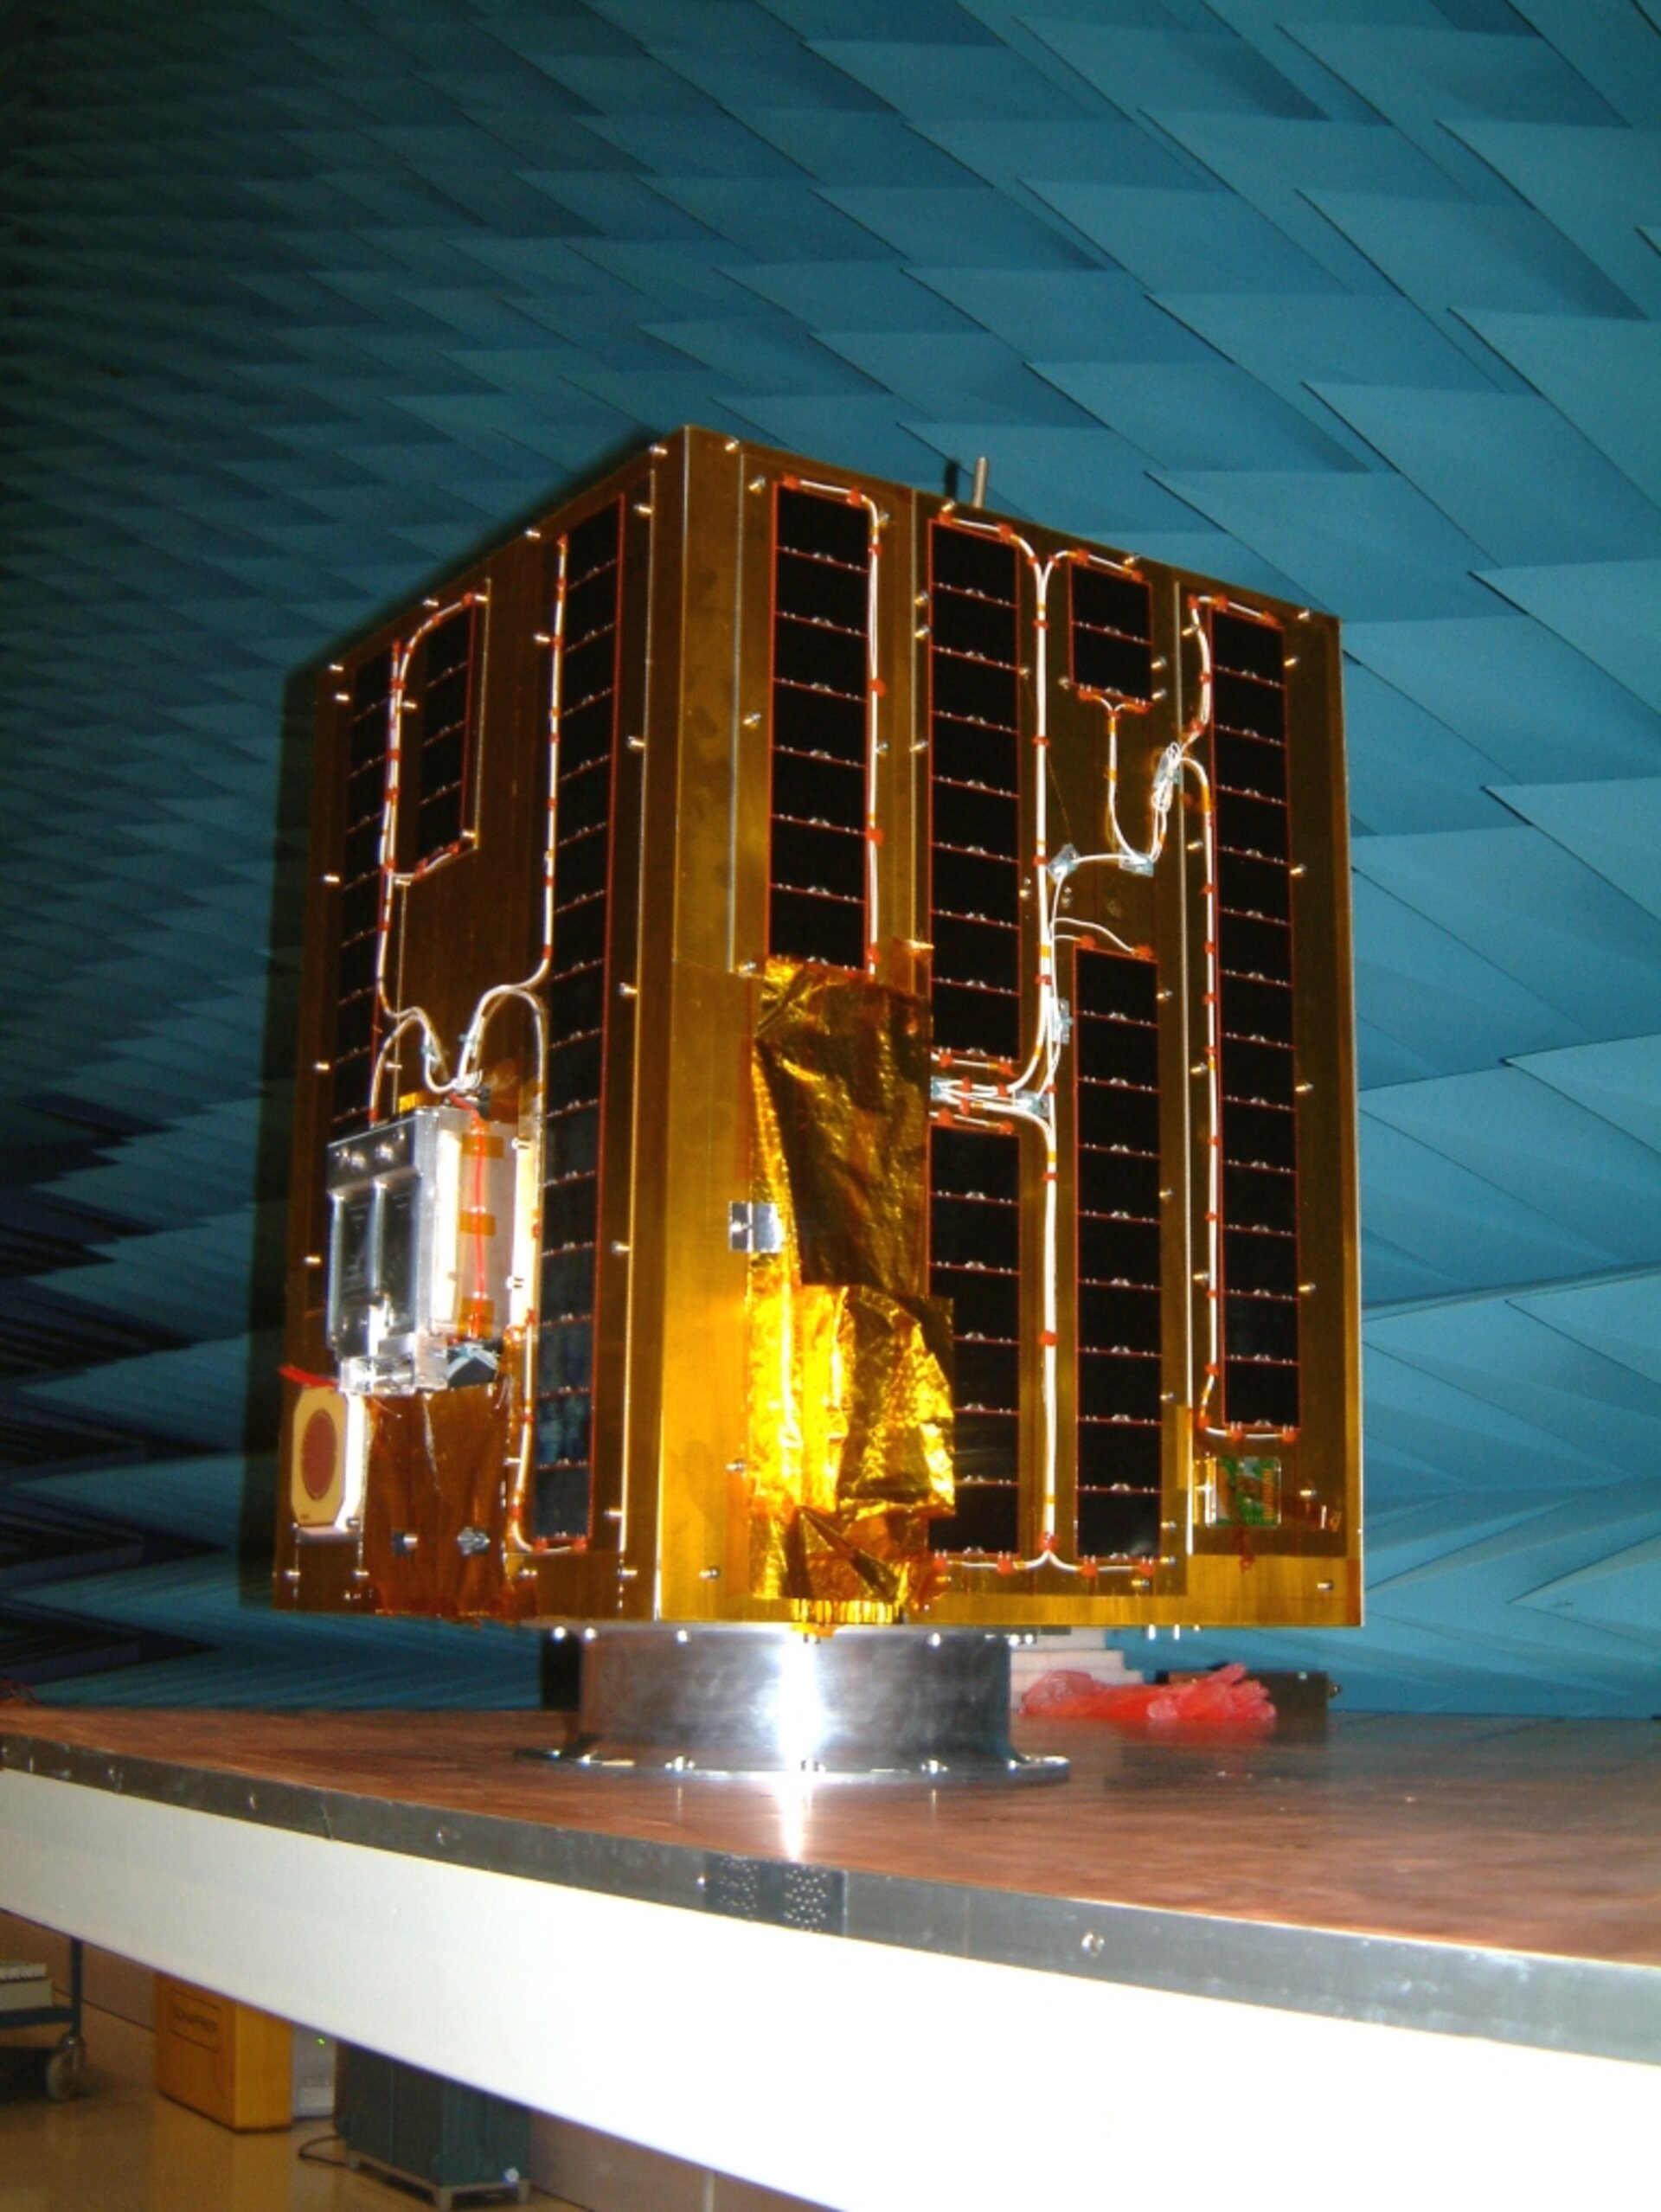 Satellite in the anechoic chamber, ready for electromagnetic compatibility testing